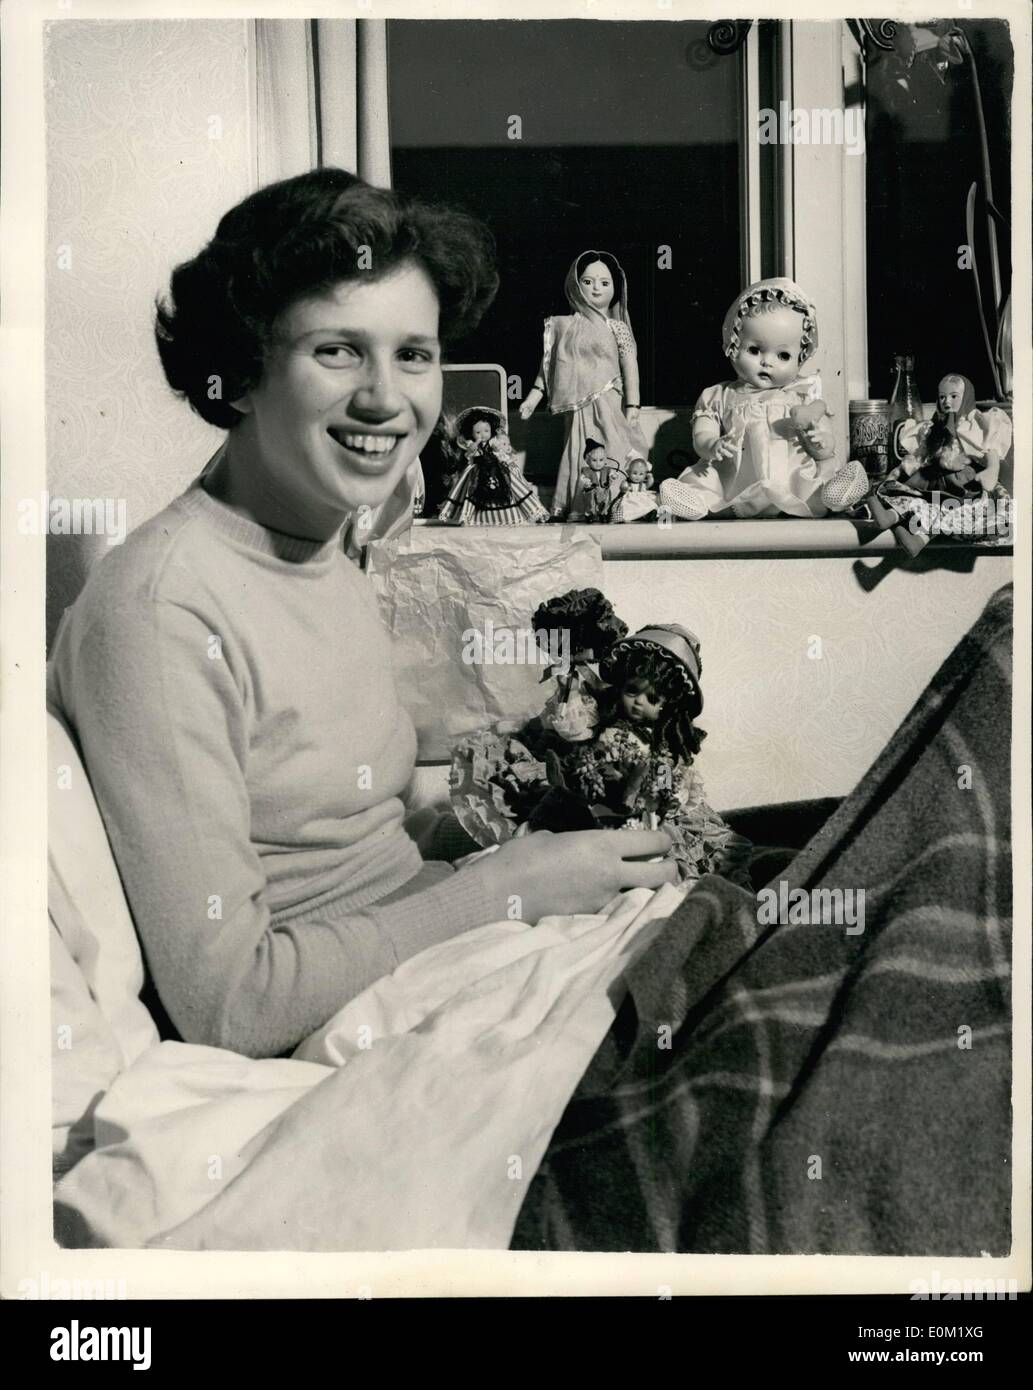 Mar. 03, 1953 - The girl from Australia who laughs at Disaster: Six months ago seventeen year old Claire Stacy travelled with her mother from Adelaide, Australia to England for operations on the amputation of both legs and the fitting of artificial limbs - at the Roehampton Hospital.. A fund was started in Adelaide to pay for the operation and journey - for Claire, who is the second eldest of a family of four has had trouble with her legs since childhood, owing to a rare breakdown in her bodily chemistry her bones would not set properly - Stock Image